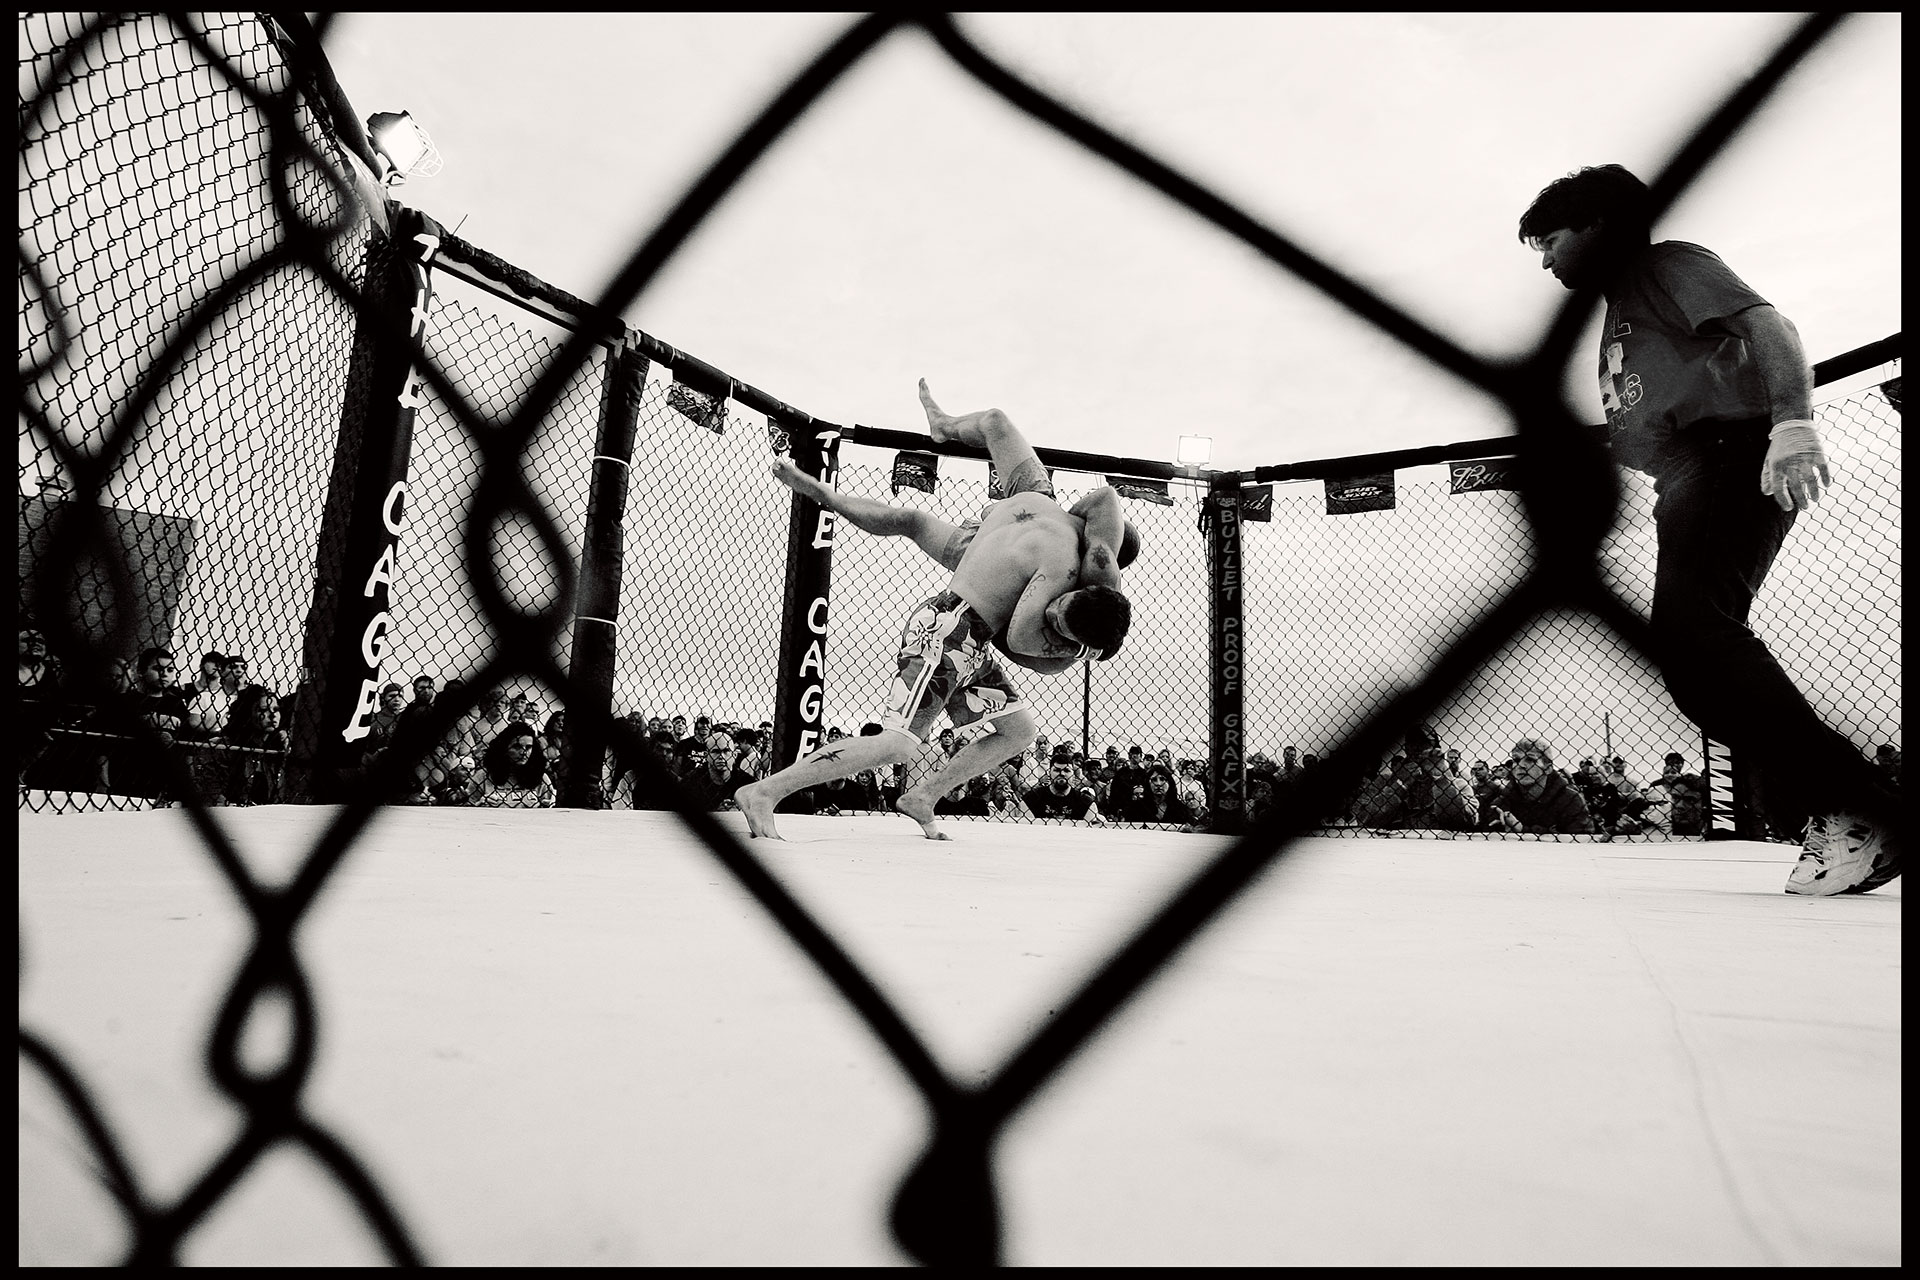 Cage-fighting-04